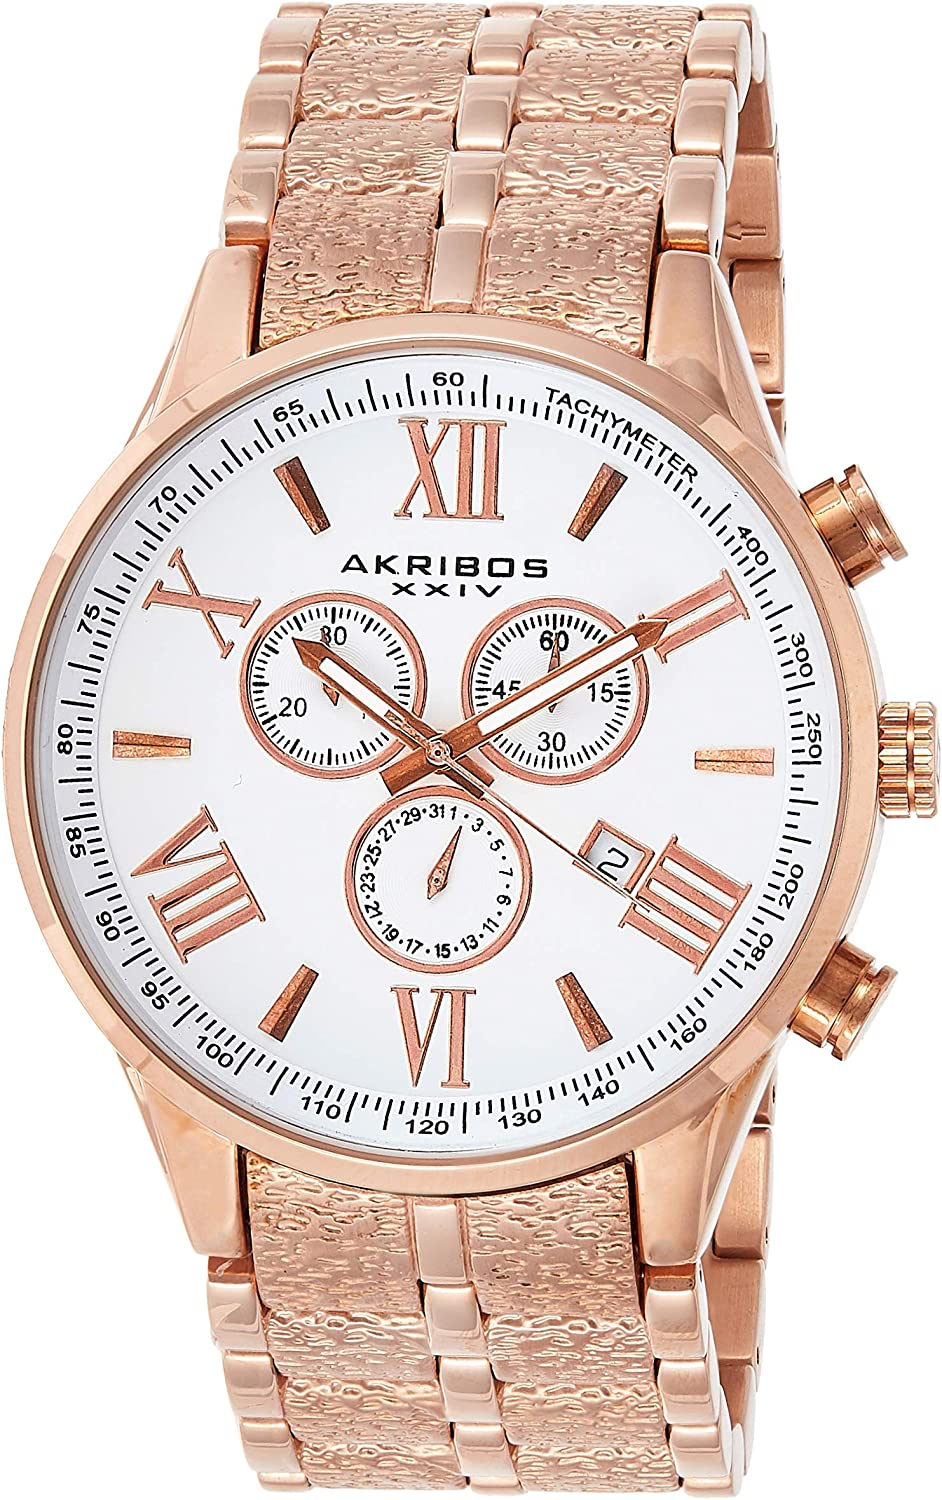 Akribos Chronograph Multifunction Tachymeter Men's Watch - Stainless Steel Wristwatch with Date, Day and 24 Hour 3 Sub Dials - AK960